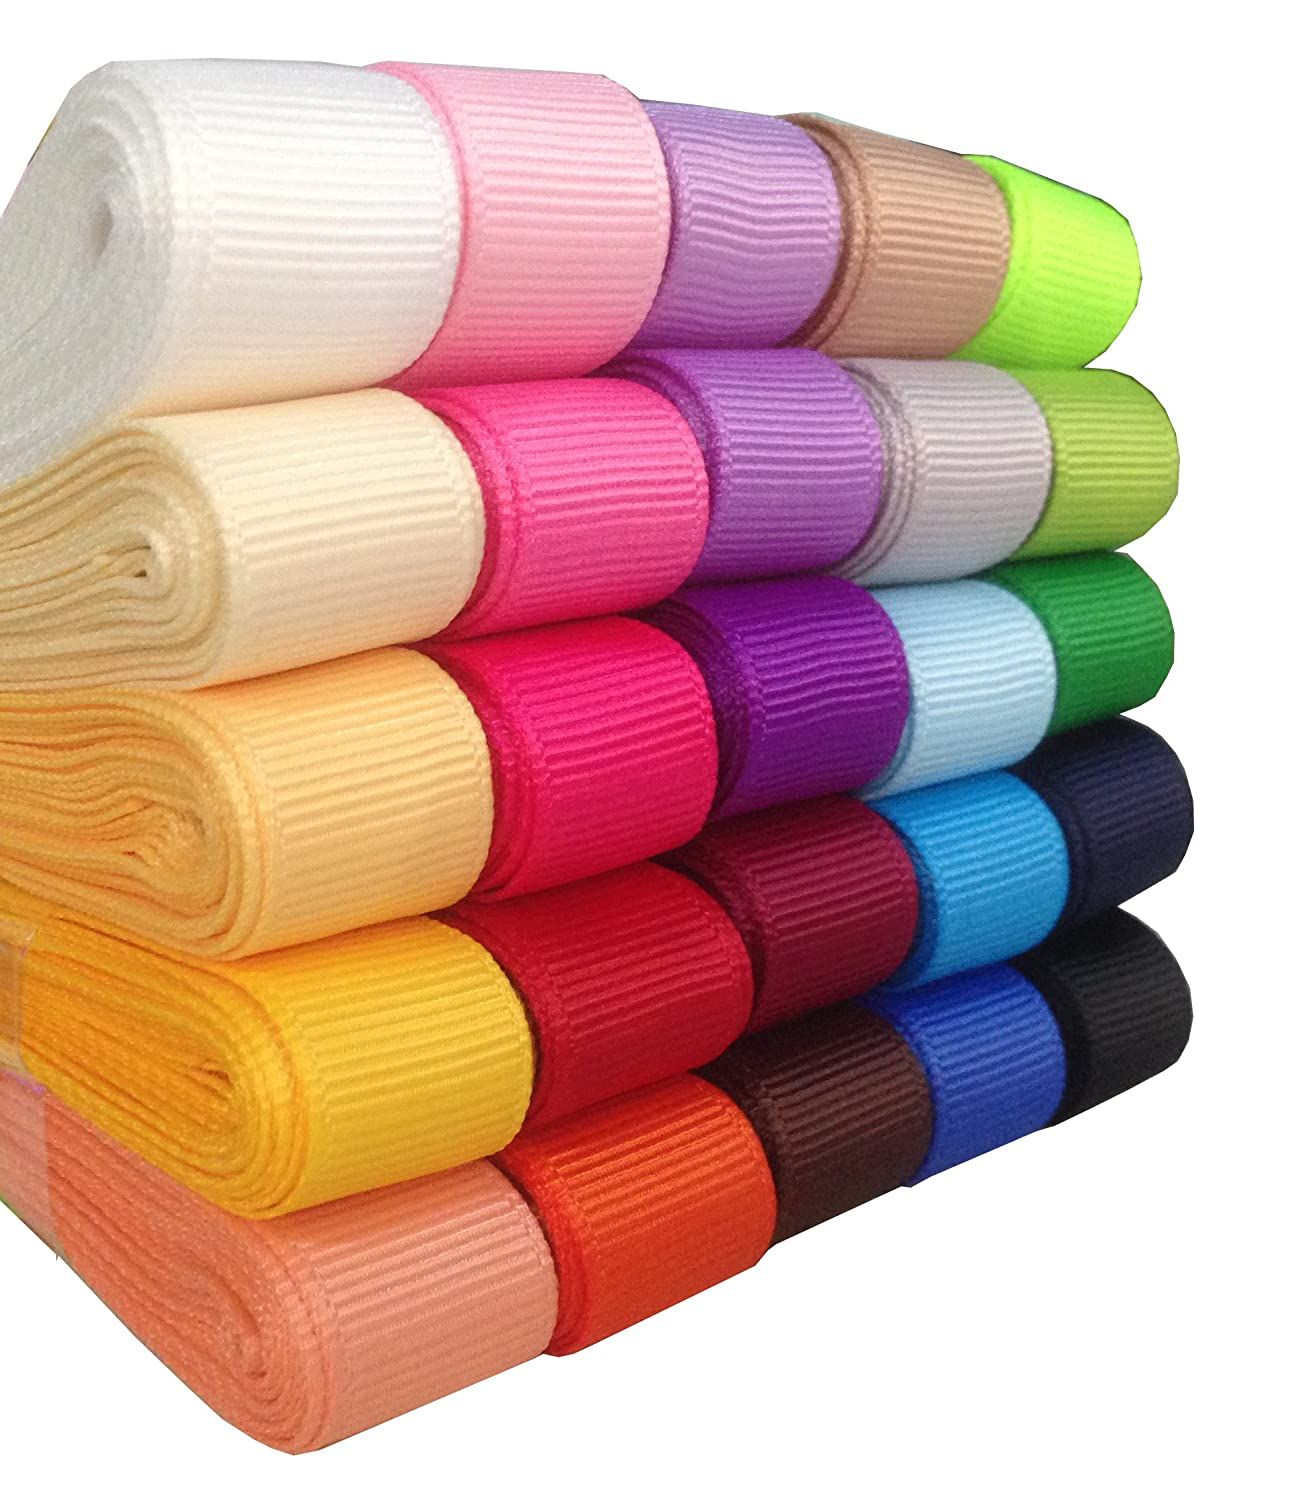 25x3yd 3//8 Solid Grosgrain Ribbon Polyester 25 Colors Assorted DUOQU 75yd